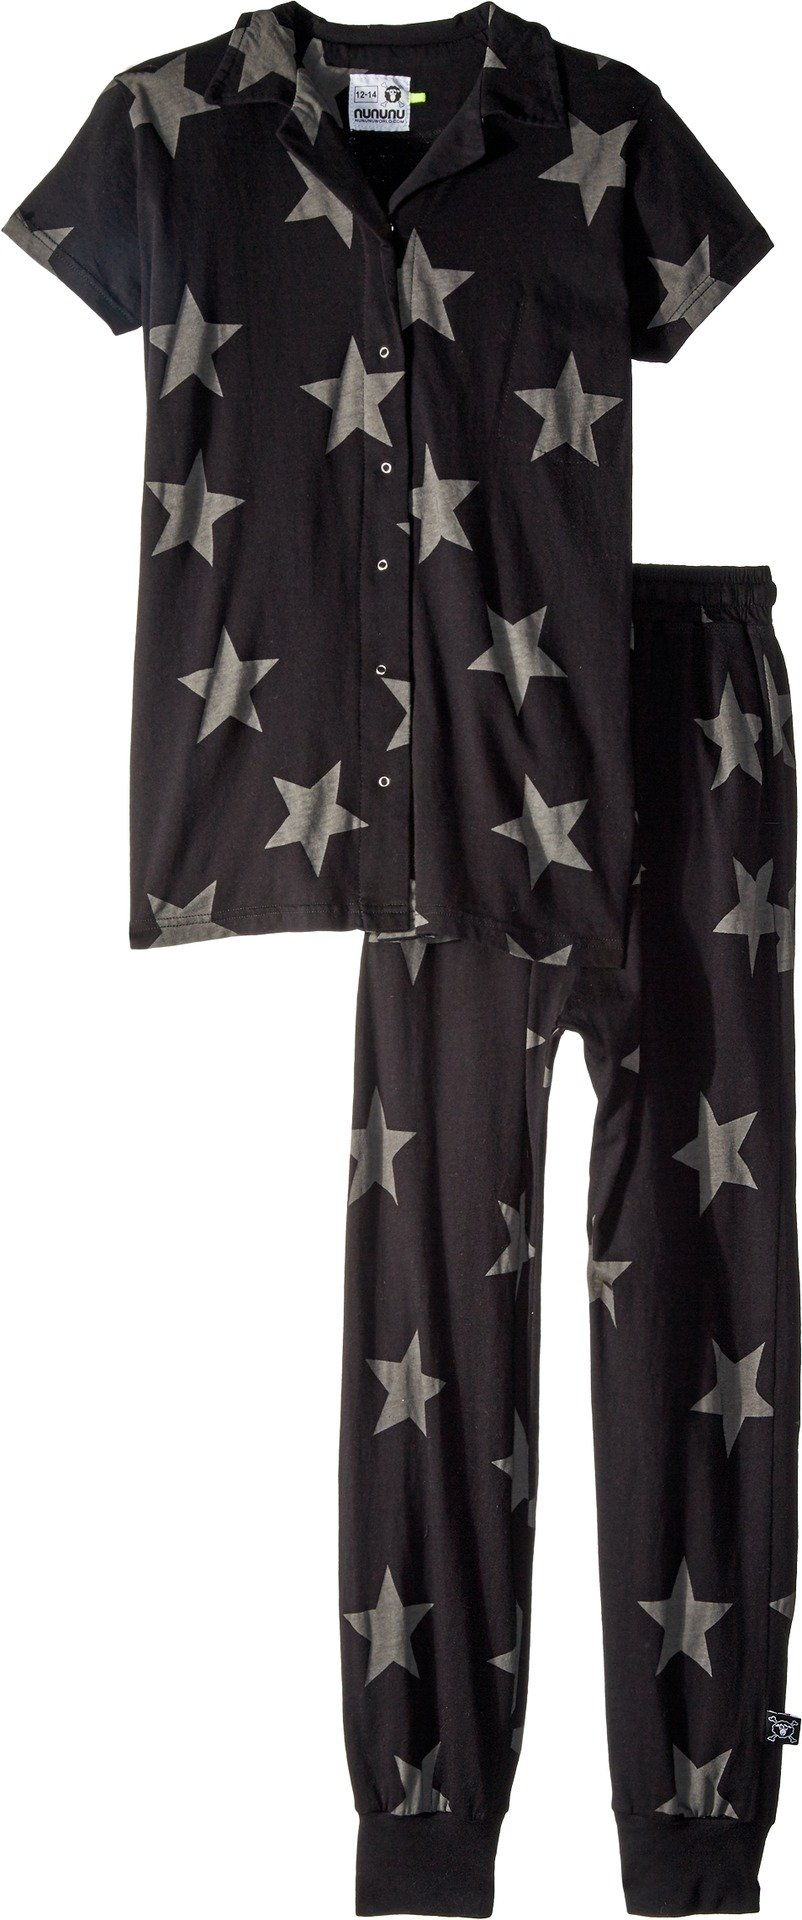 NUNUNU Boy's Buttoned Loungewear (Little Kids/Big Kids) Black 12/14 Years